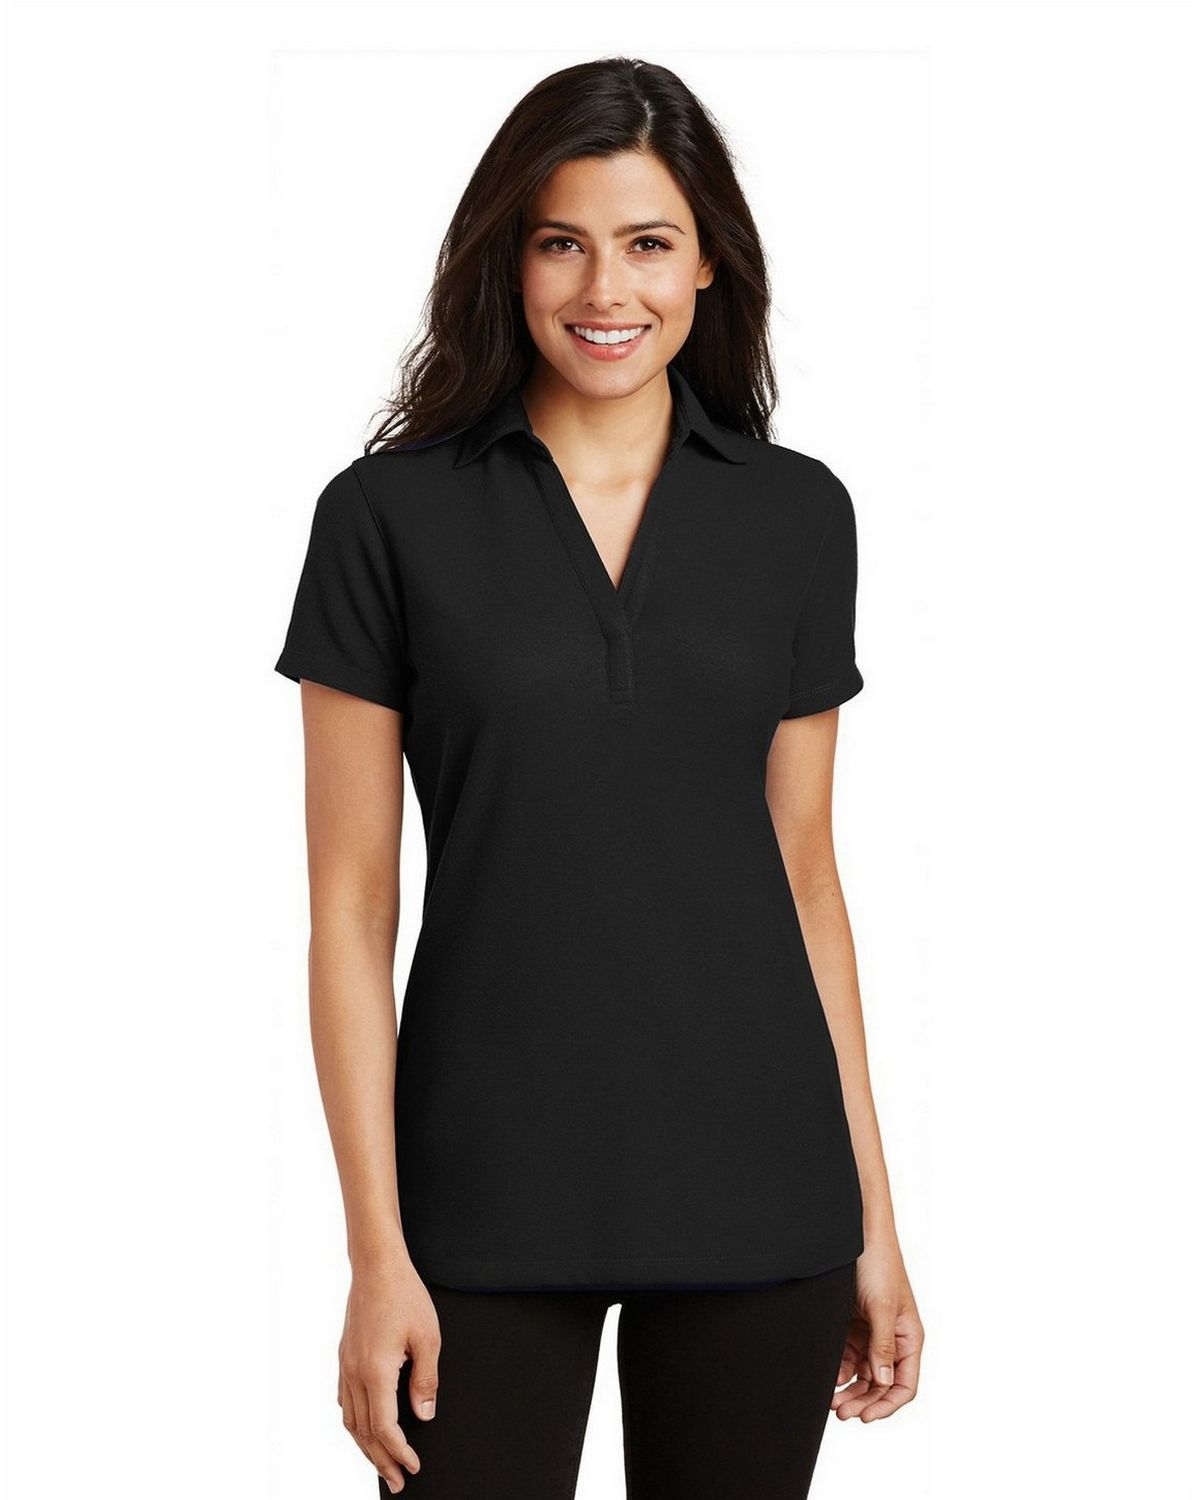 Port Authority L5001 Women's Silk Touch Y-Neck Polo - Black - XS #silk